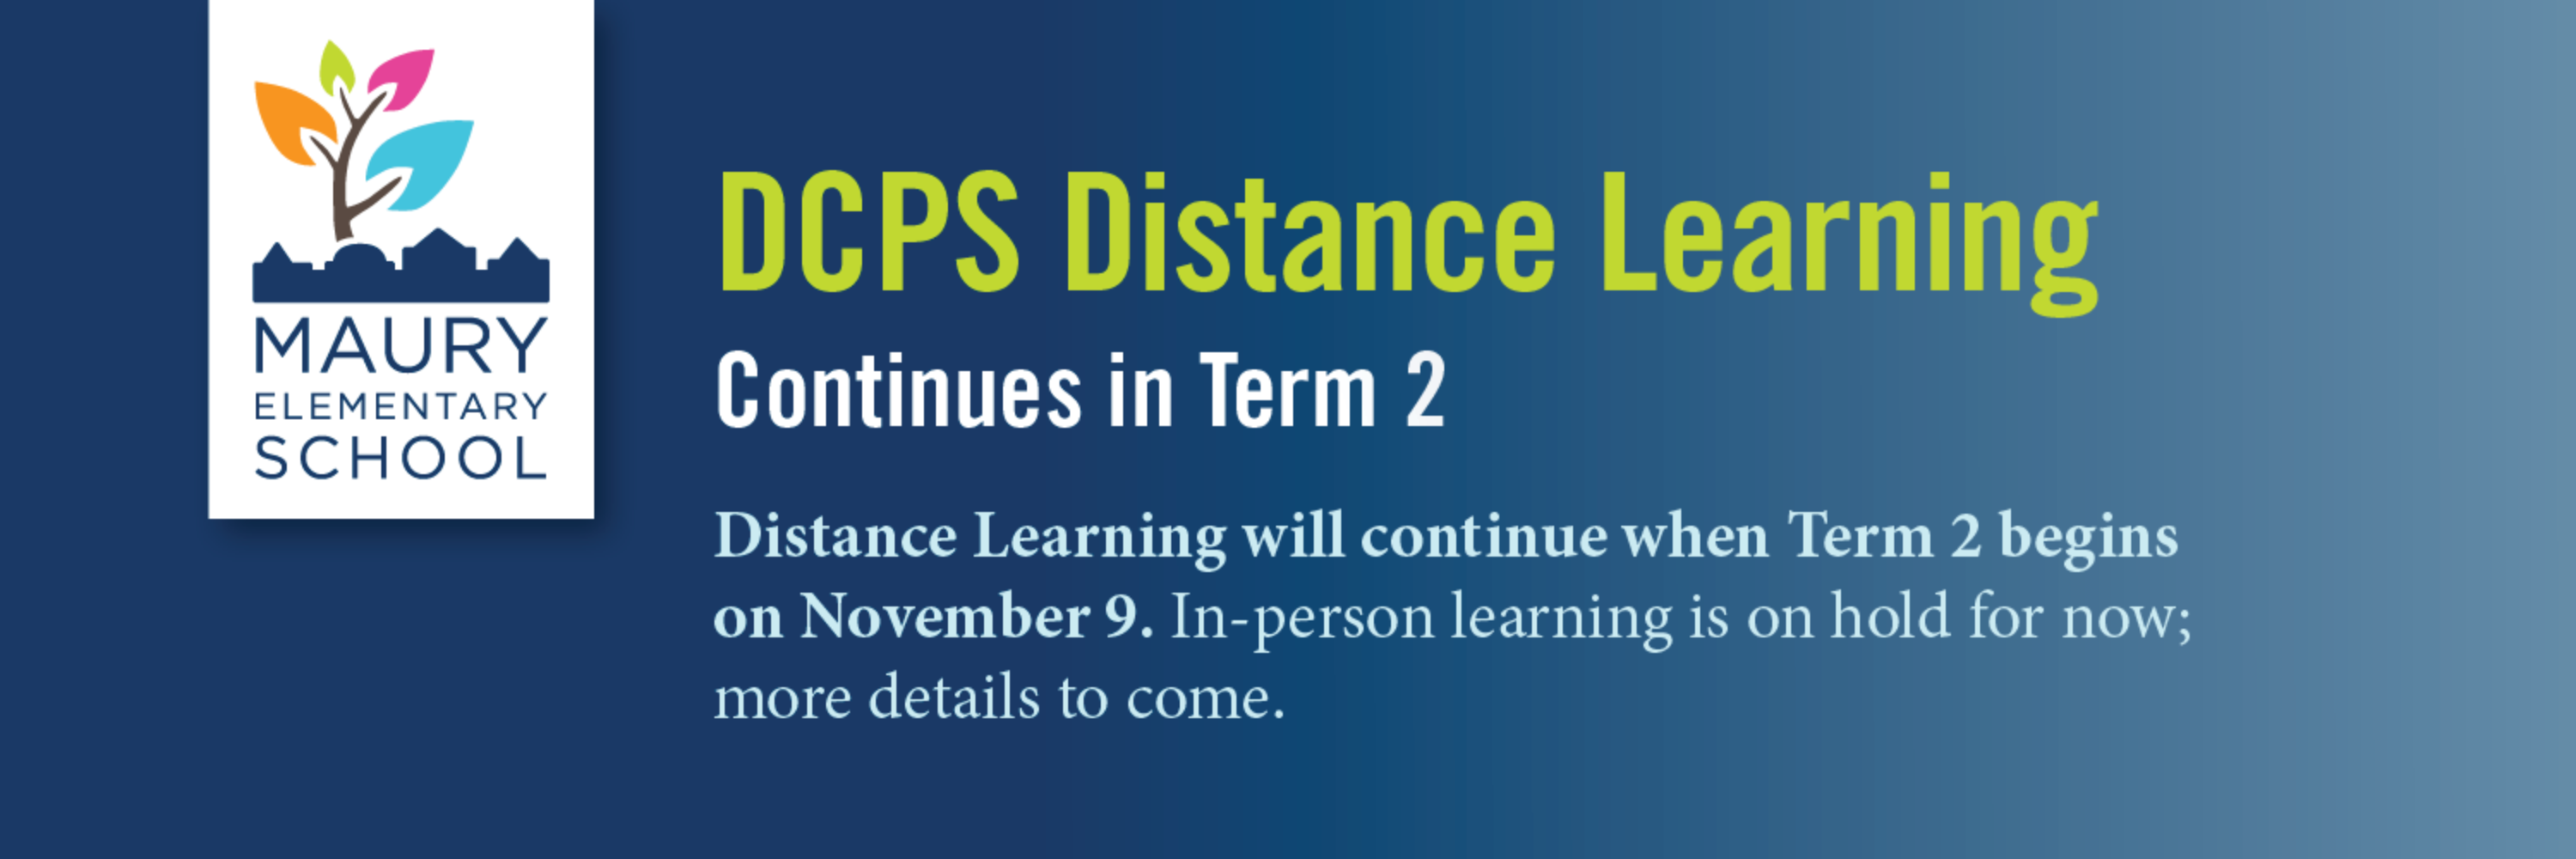 DCPS Distance Learning